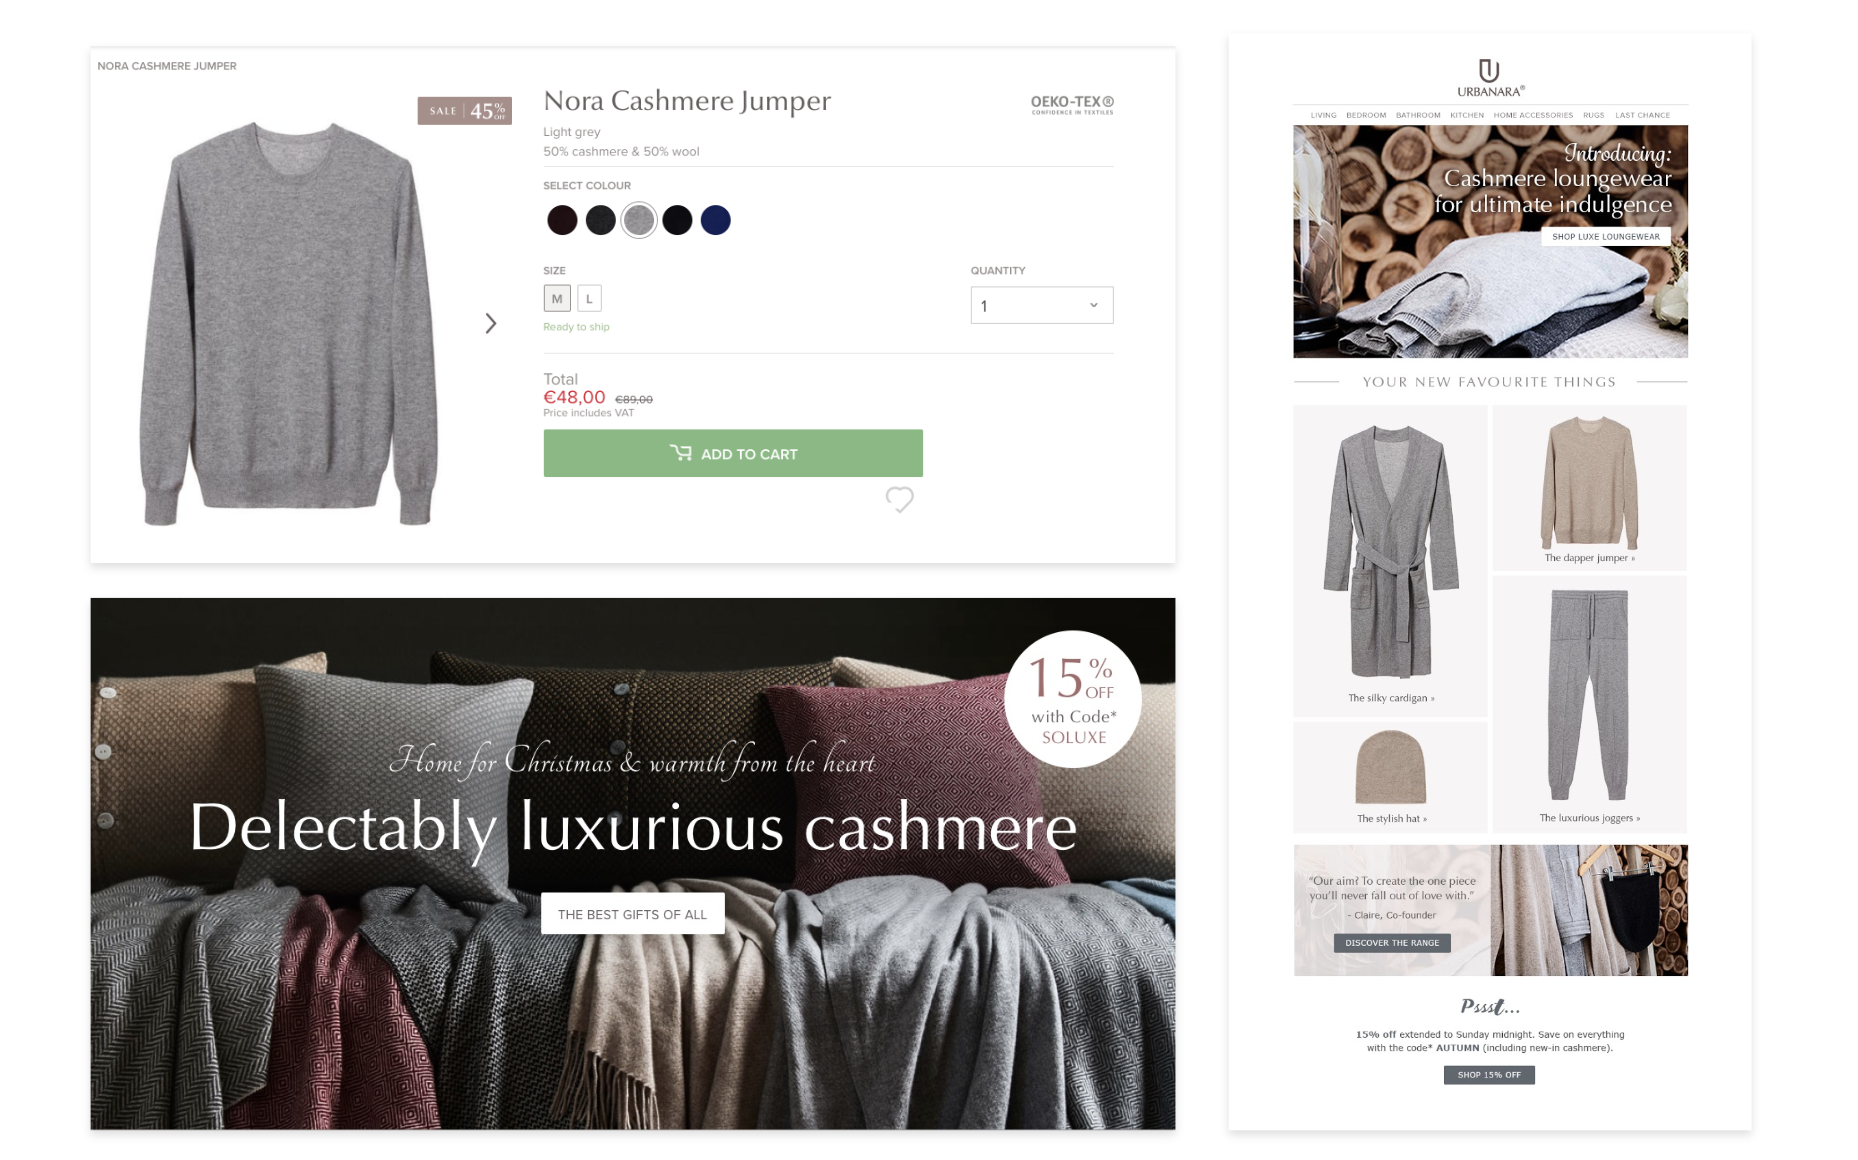 A collection of assets for a cashmere collection launch and sales campaign.